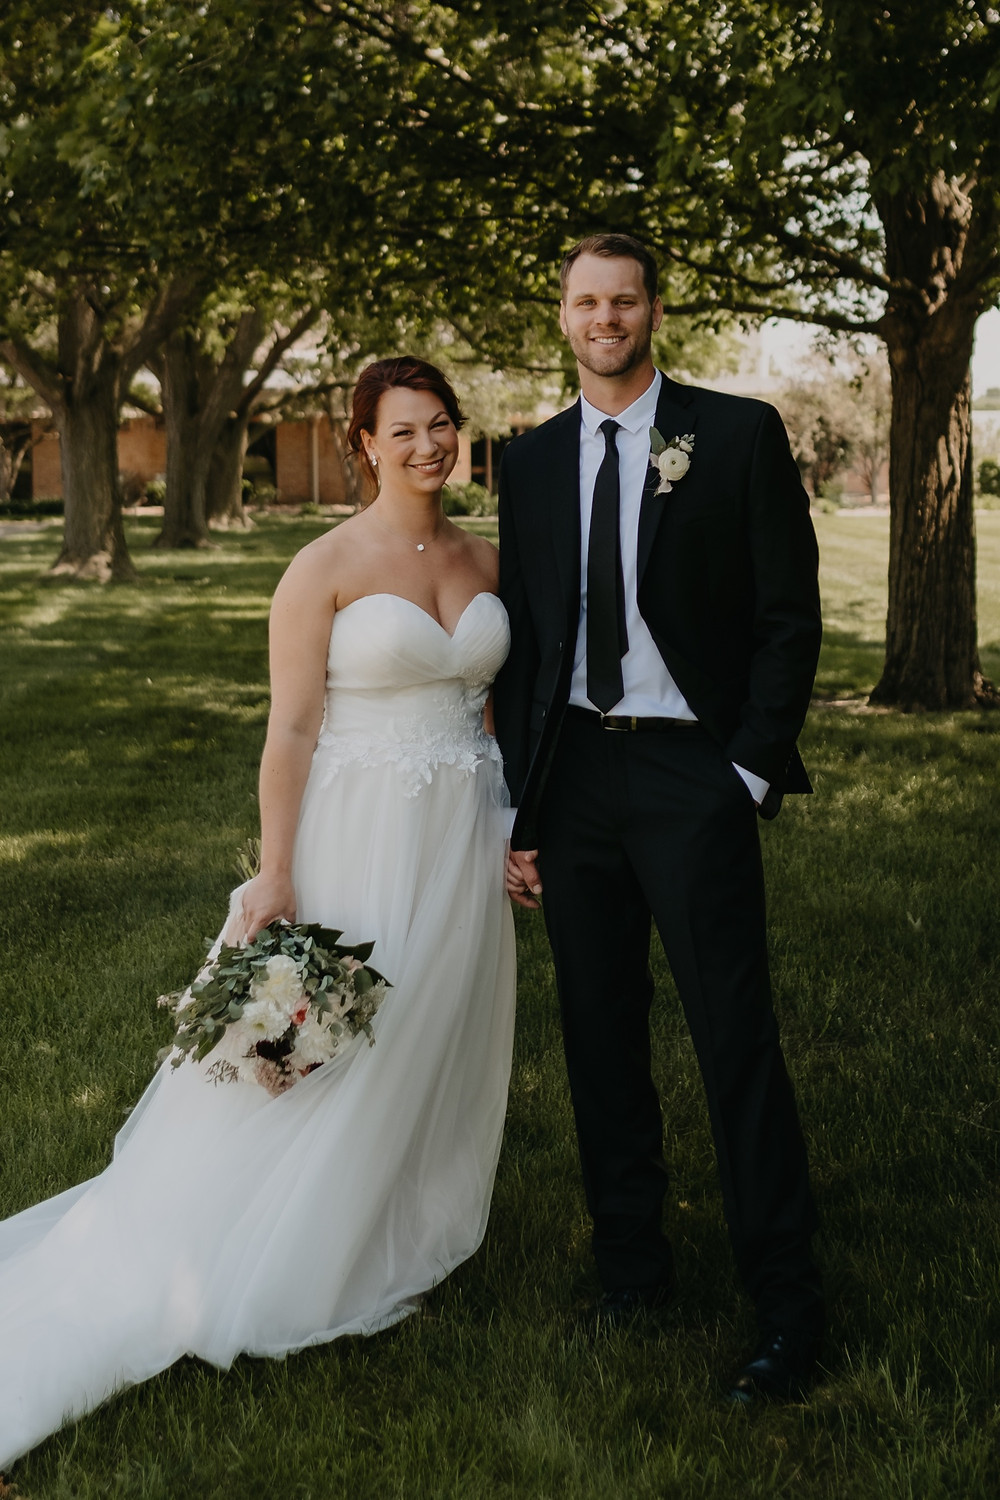 Spring wedding photography in Metro Detroit. Photographed by Nicole Leanne Photography.